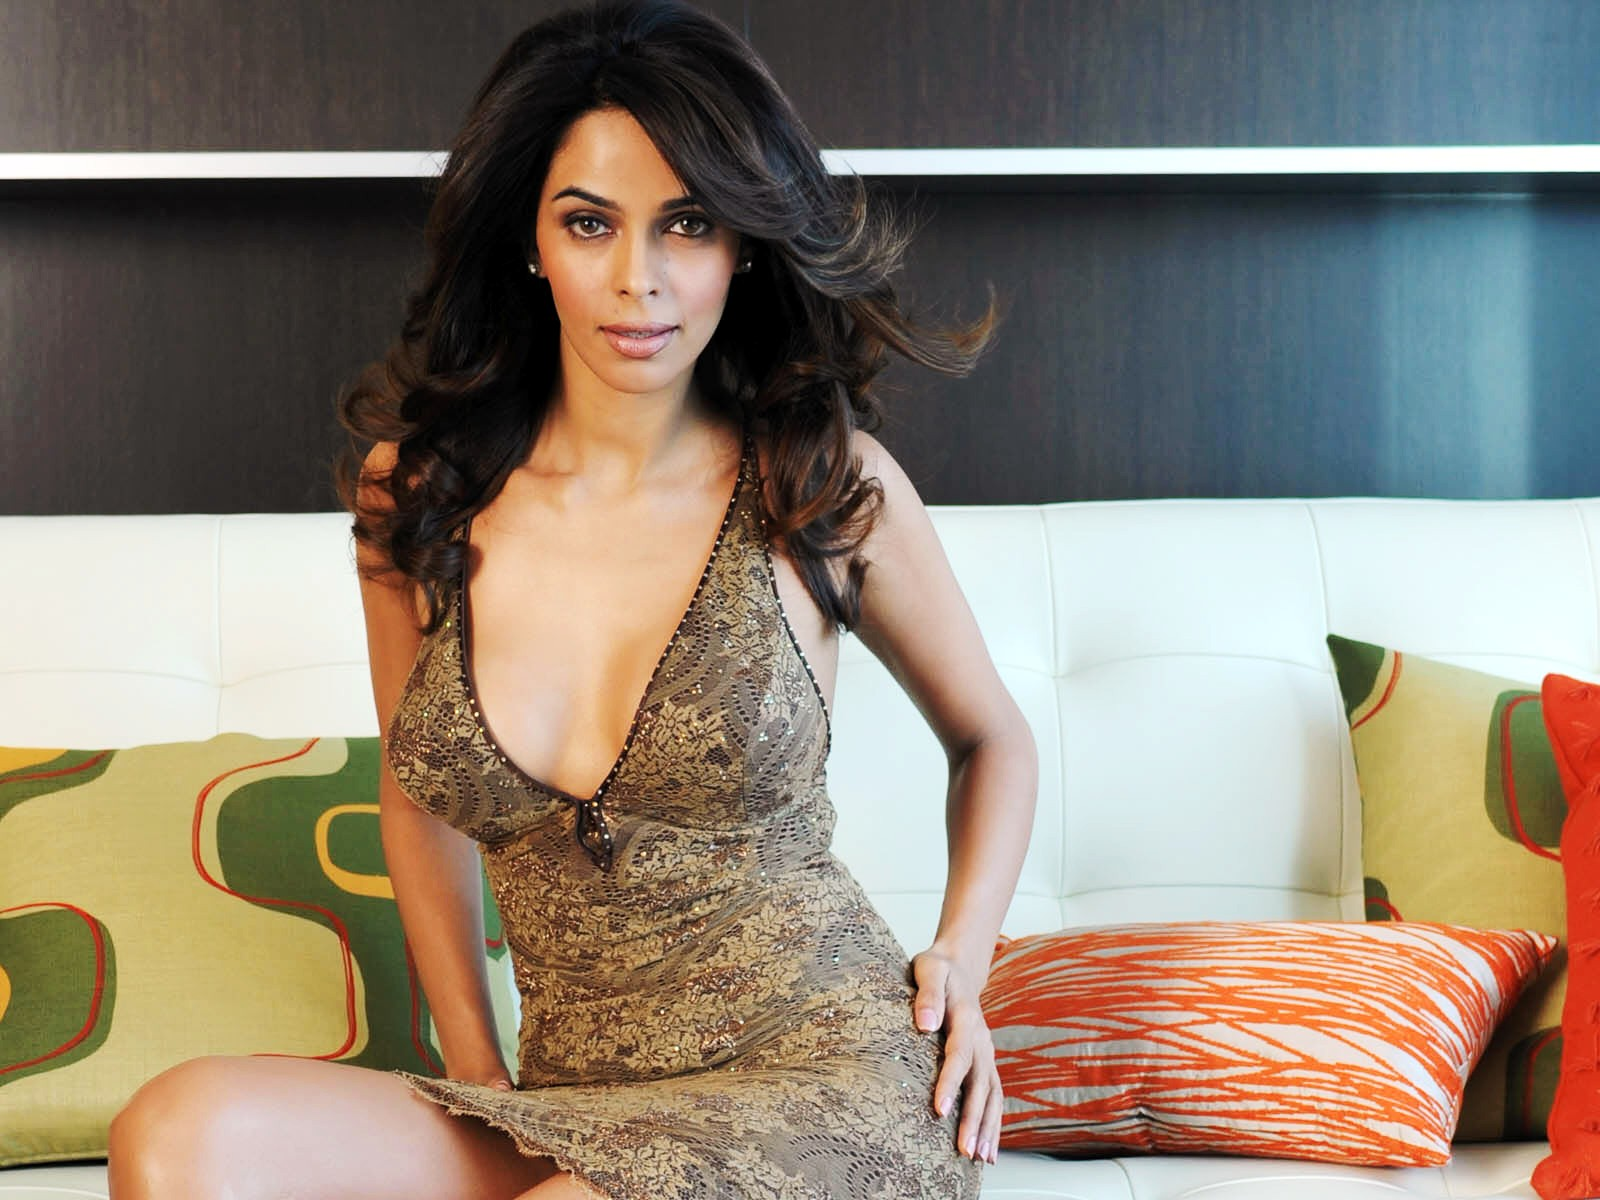 Cleavage Mallika Sherawat naked (96 photo), Pussy, Cleavage, Twitter, lingerie 2006